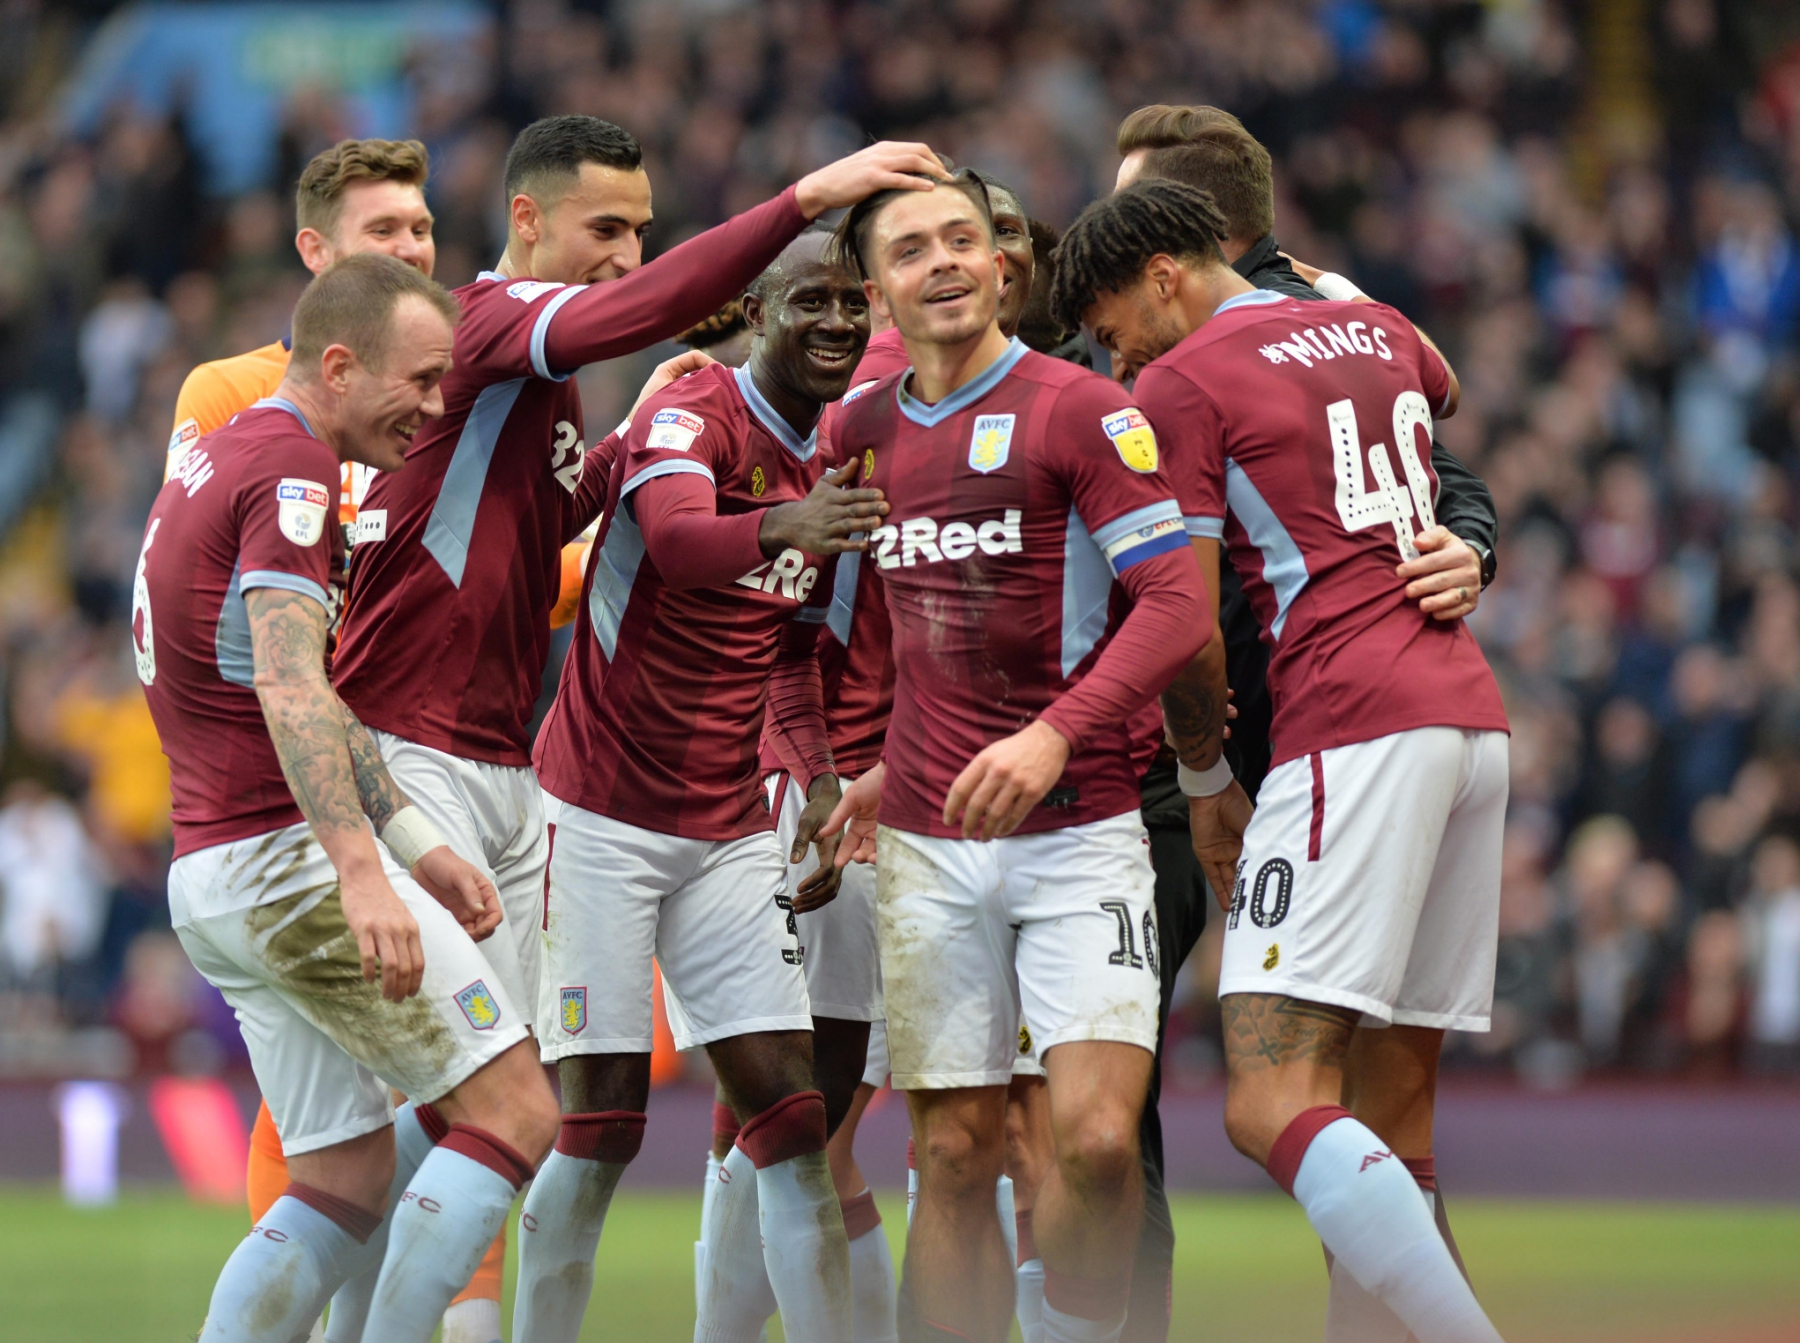 Aston Villa Ten Wins in a Row Secure Play-Off Place